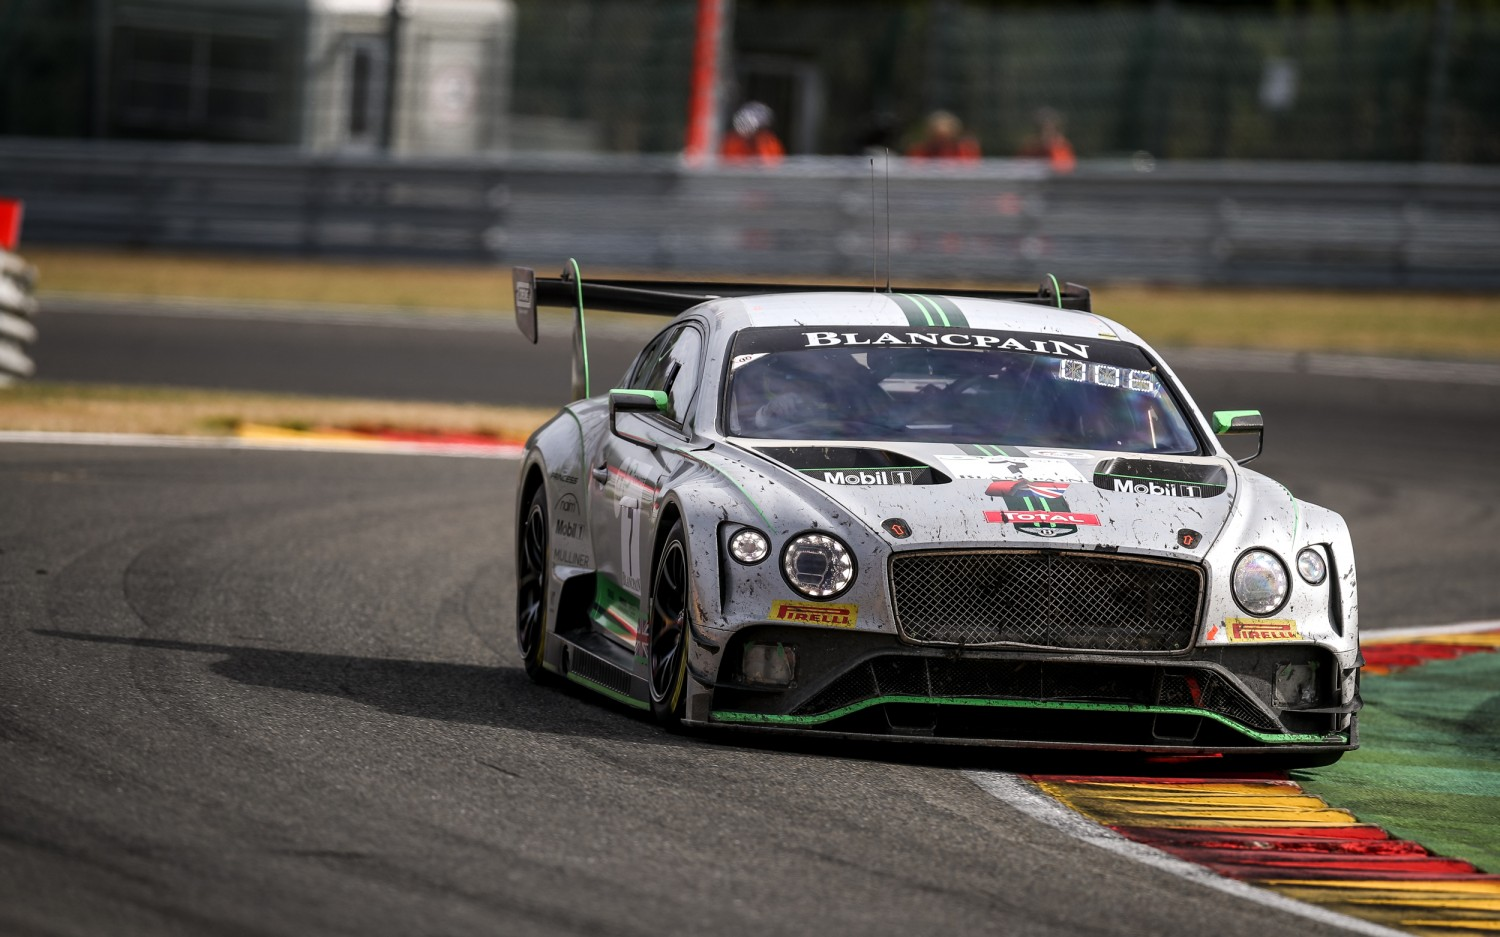 #7 Bentley Team M-Sport GBR Bentley Continental GT3 - - - Jordan Pepper ZAF Steven Kane GBR Jules Gounon FRA, Race  | SRO /  Kevin Pecks